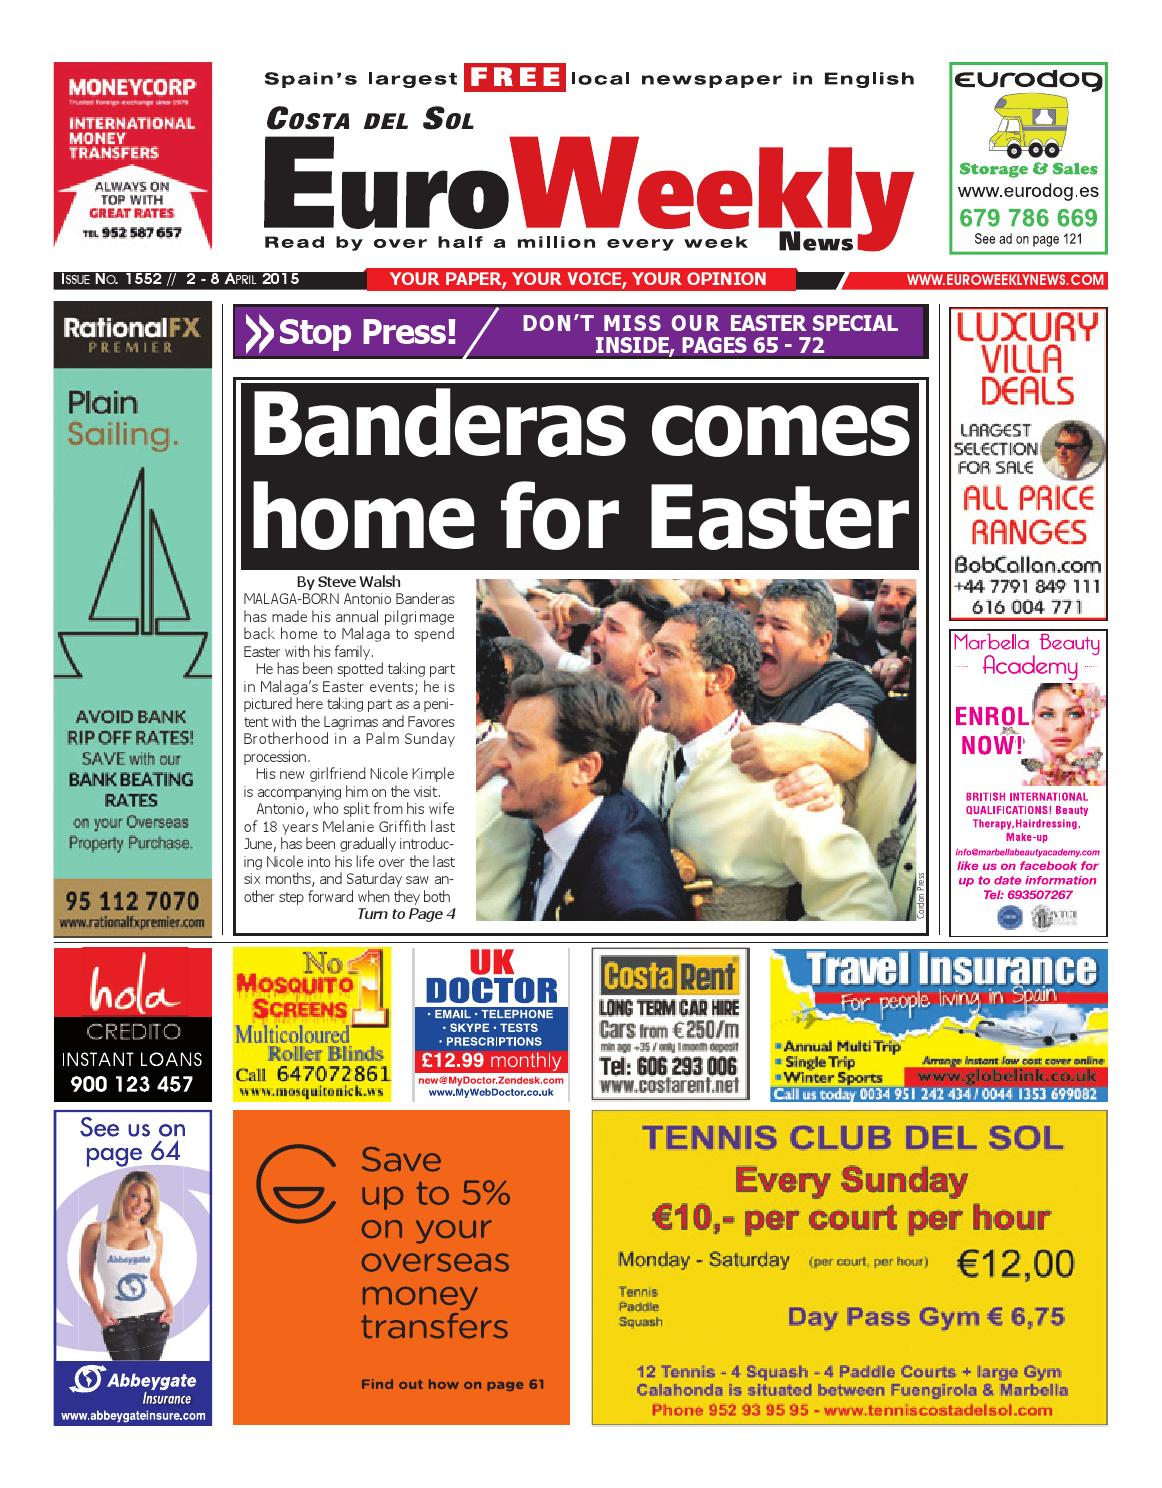 Euro weekly news costa del sol 2 8 april 2015 issue 1553 by euro euro weekly news costa del sol 2 8 april 2015 issue 1553 by euro weekly news media sa issuu fandeluxe Gallery